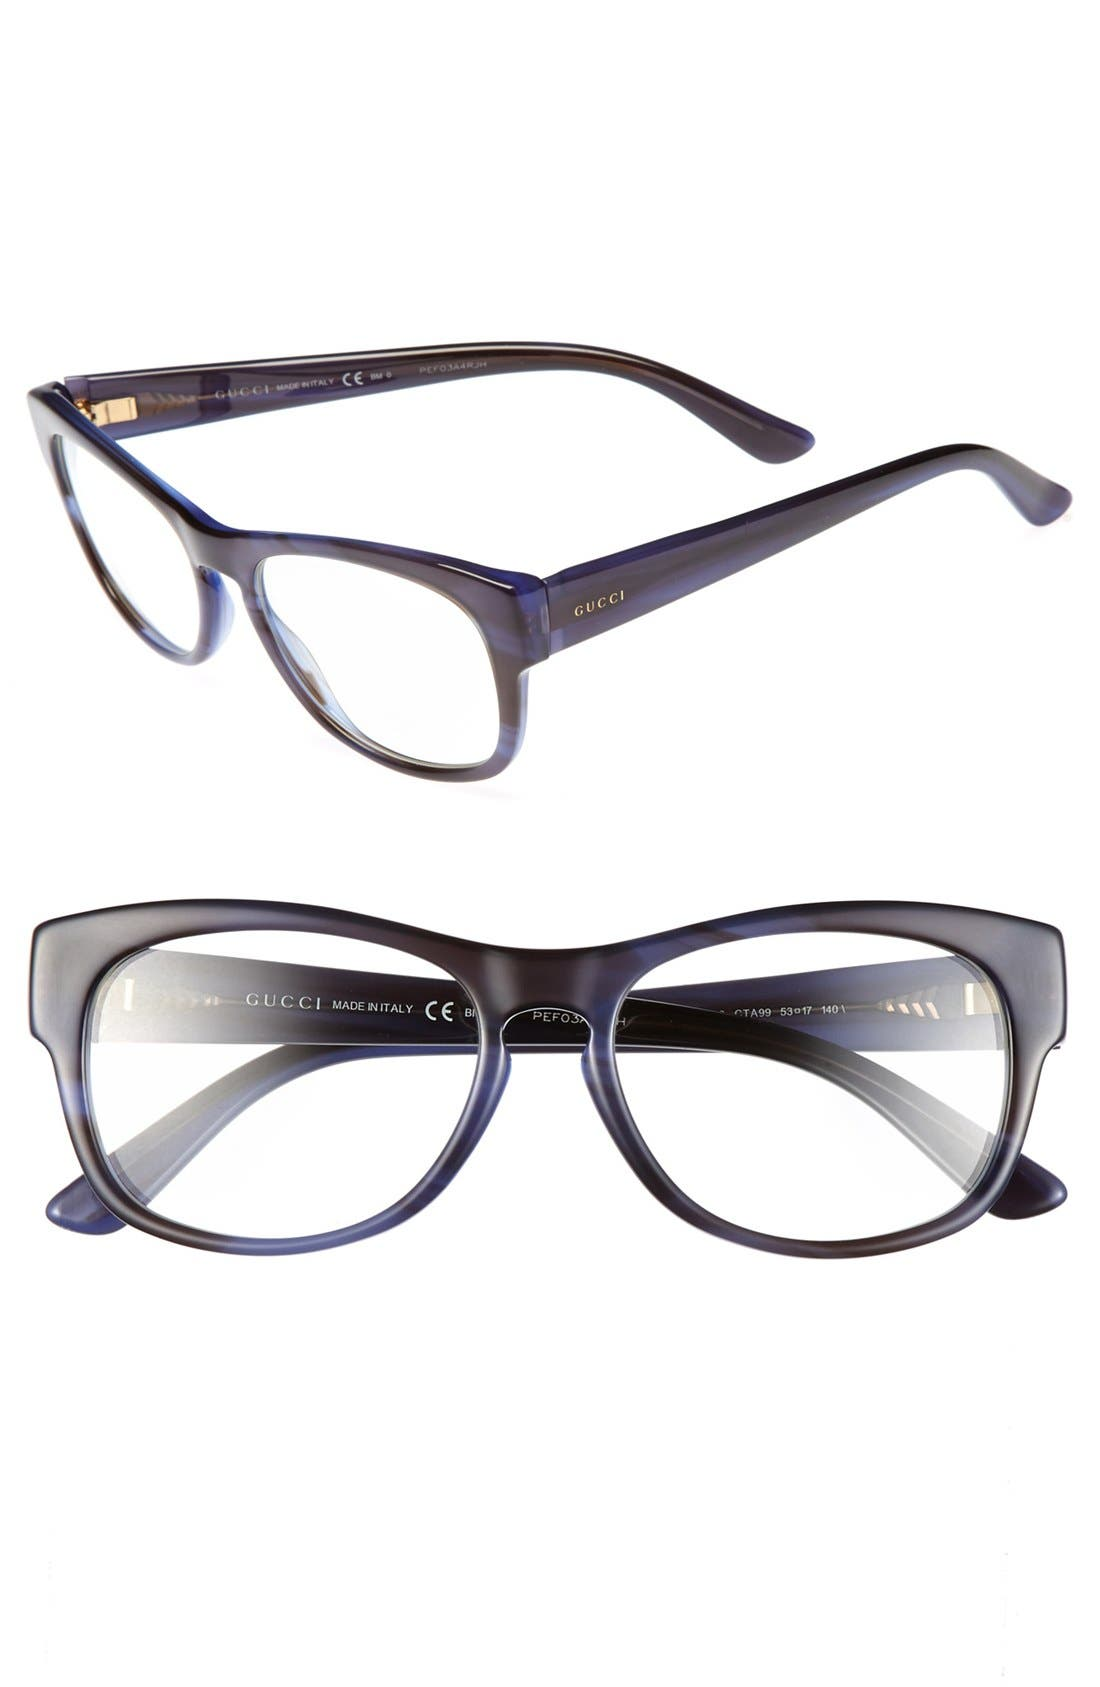 Alternate Image 1 Selected - Gucci 53mm Optical Glasses (Online Only)